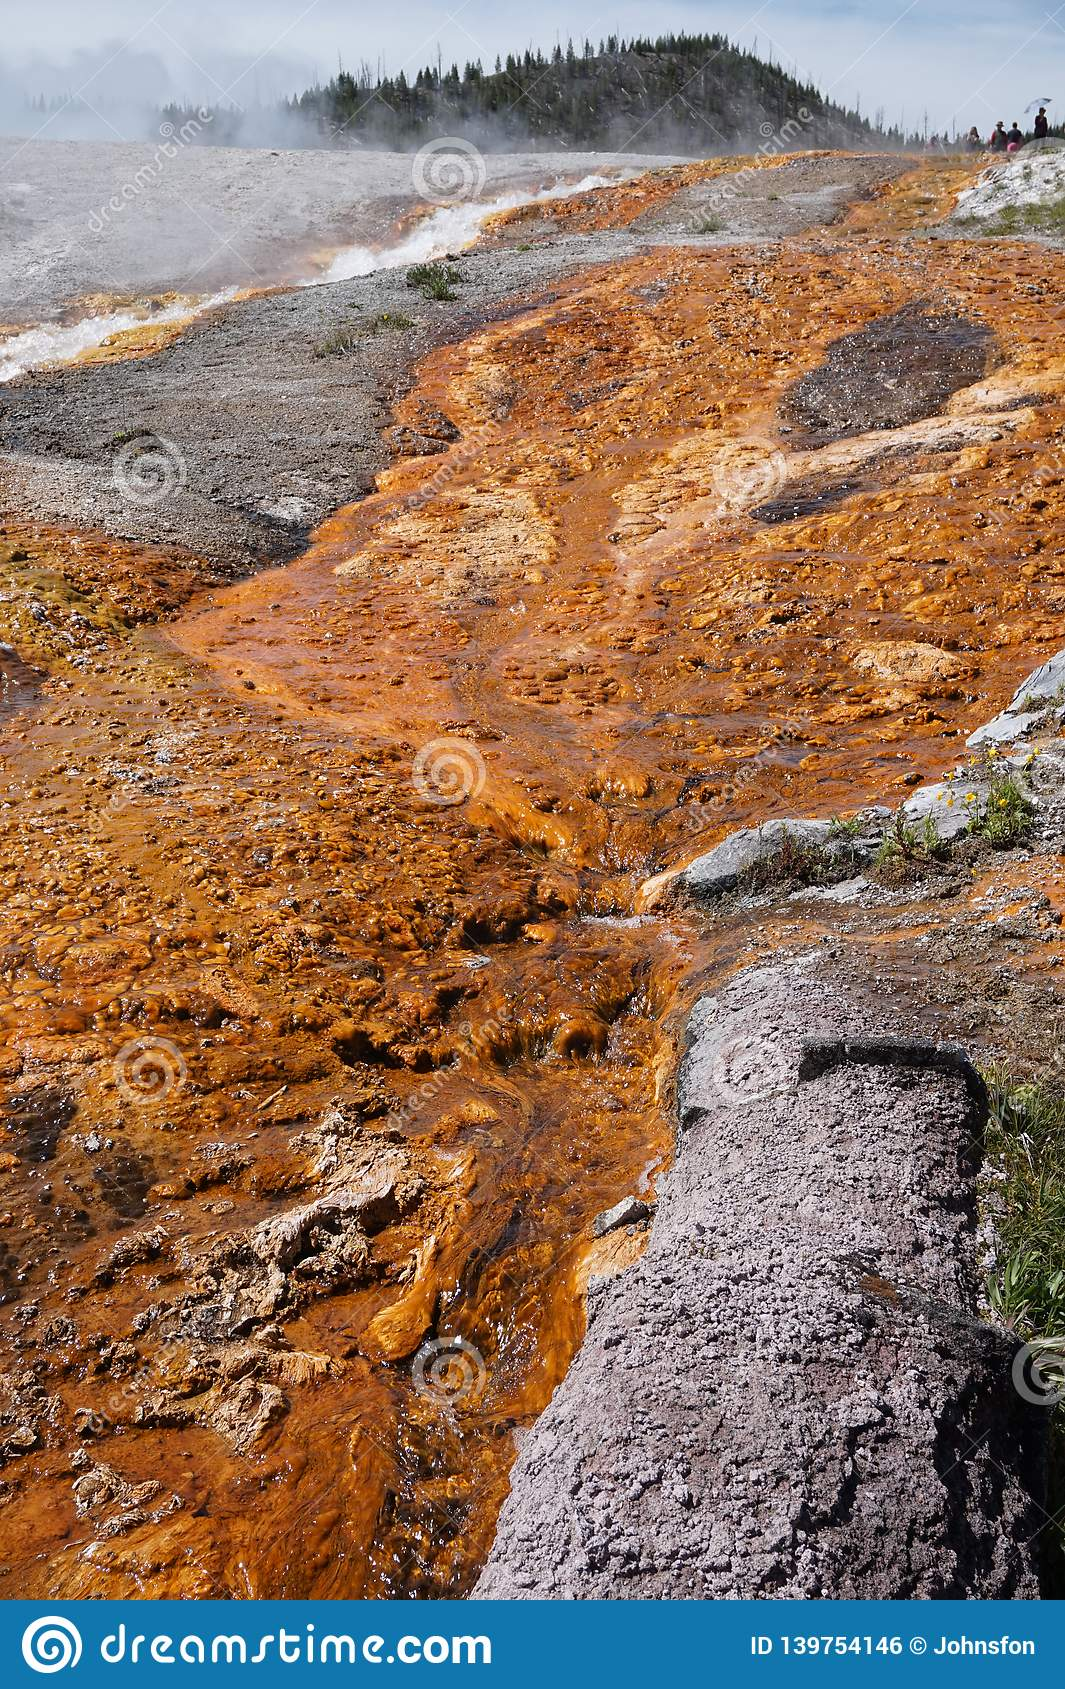 Solidified rust colored mineral deposits